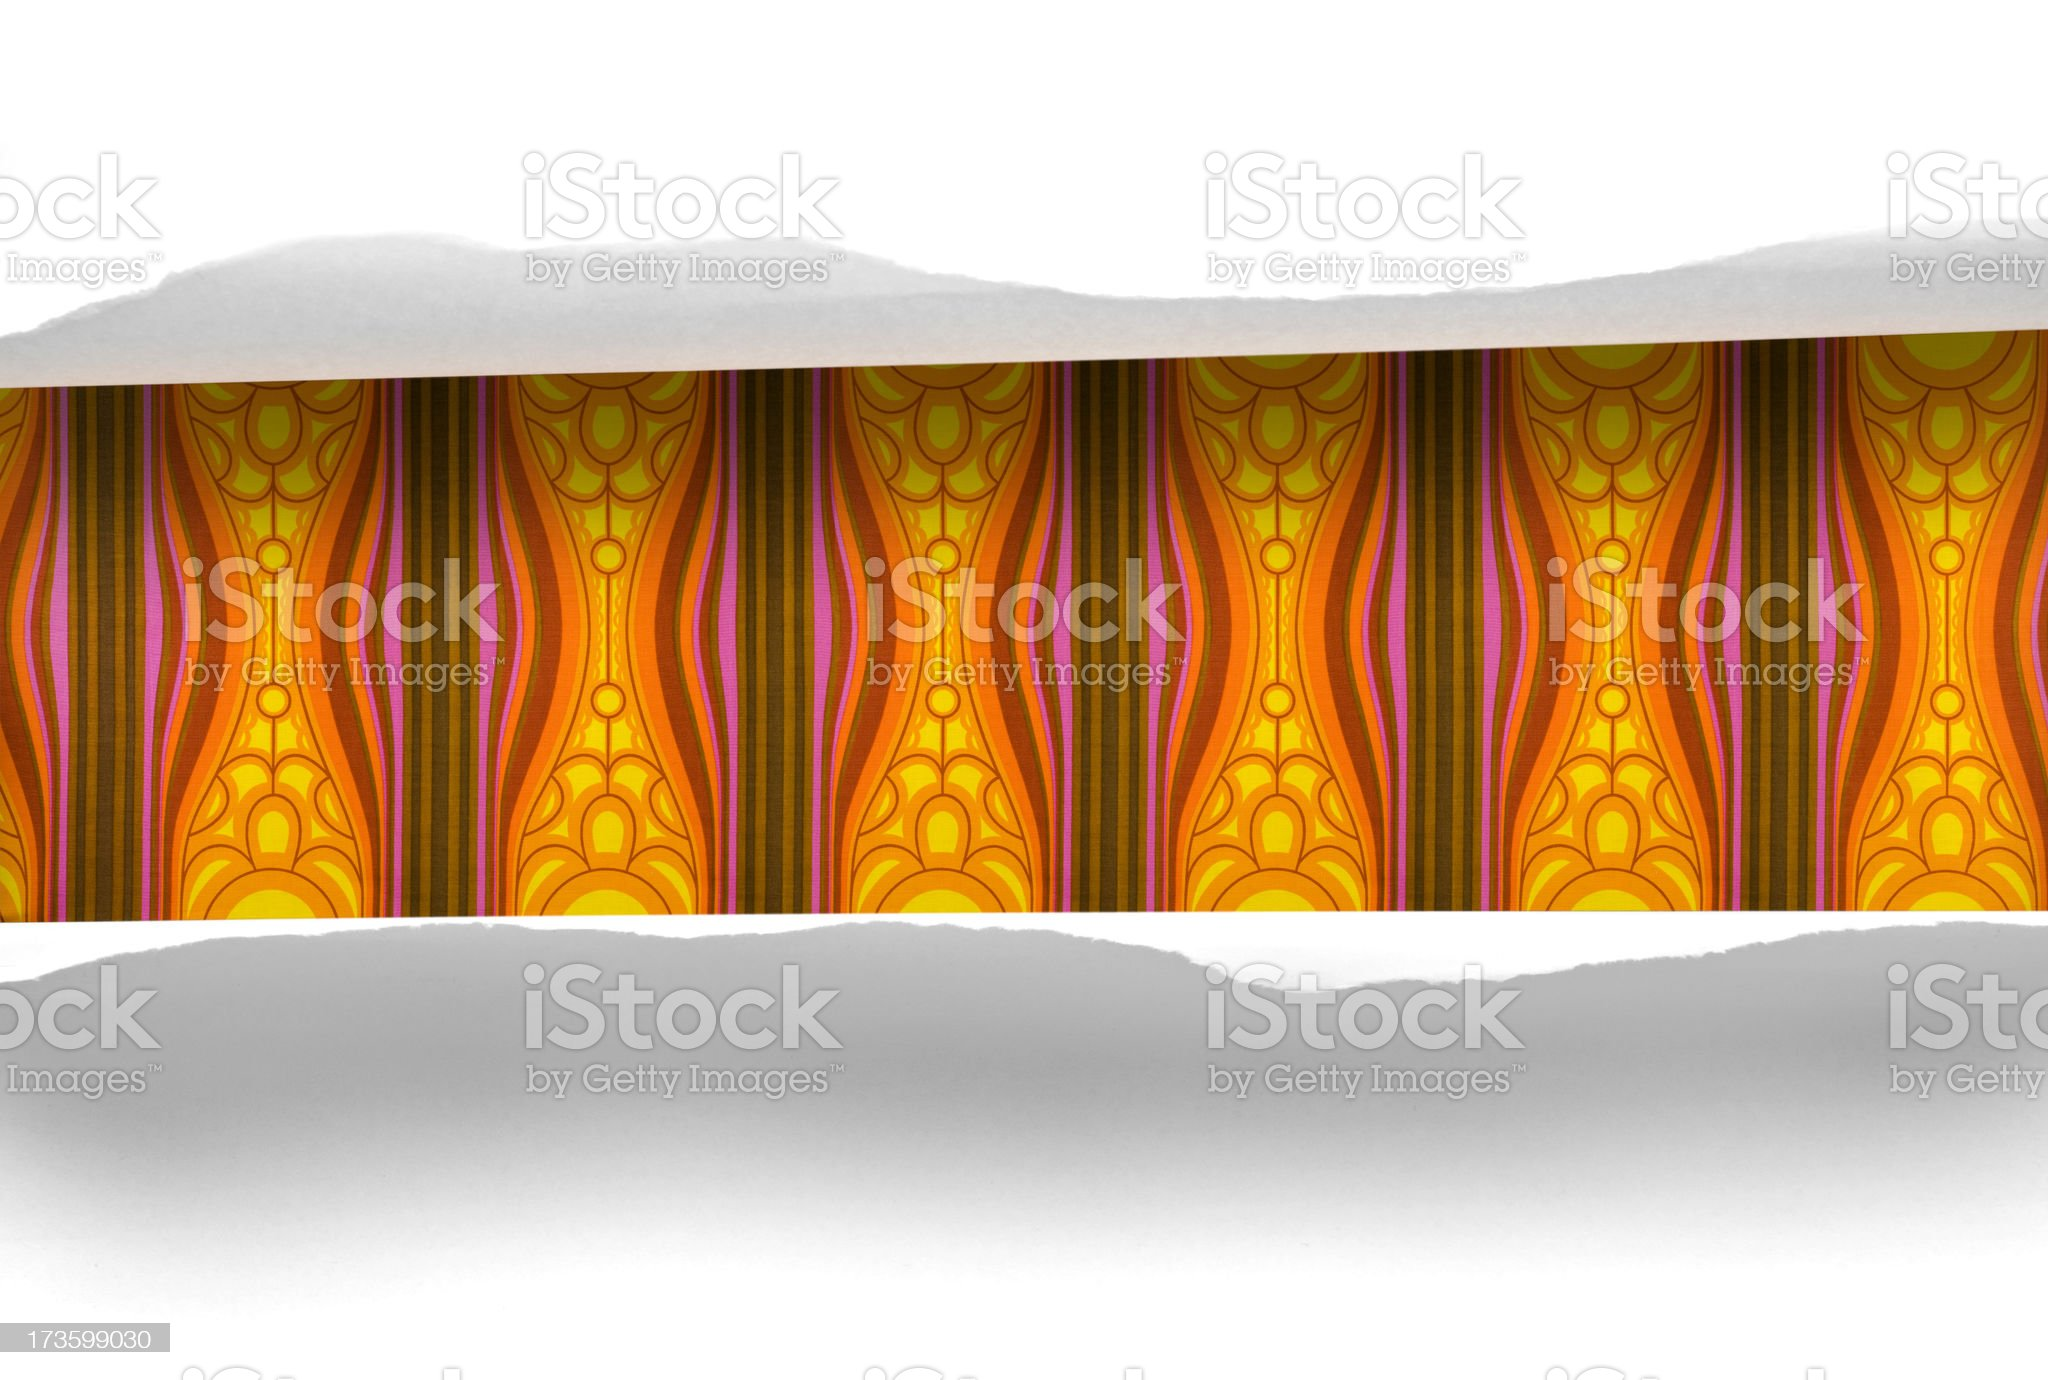 The 70s. revealed wallpaper royalty-free stock photo